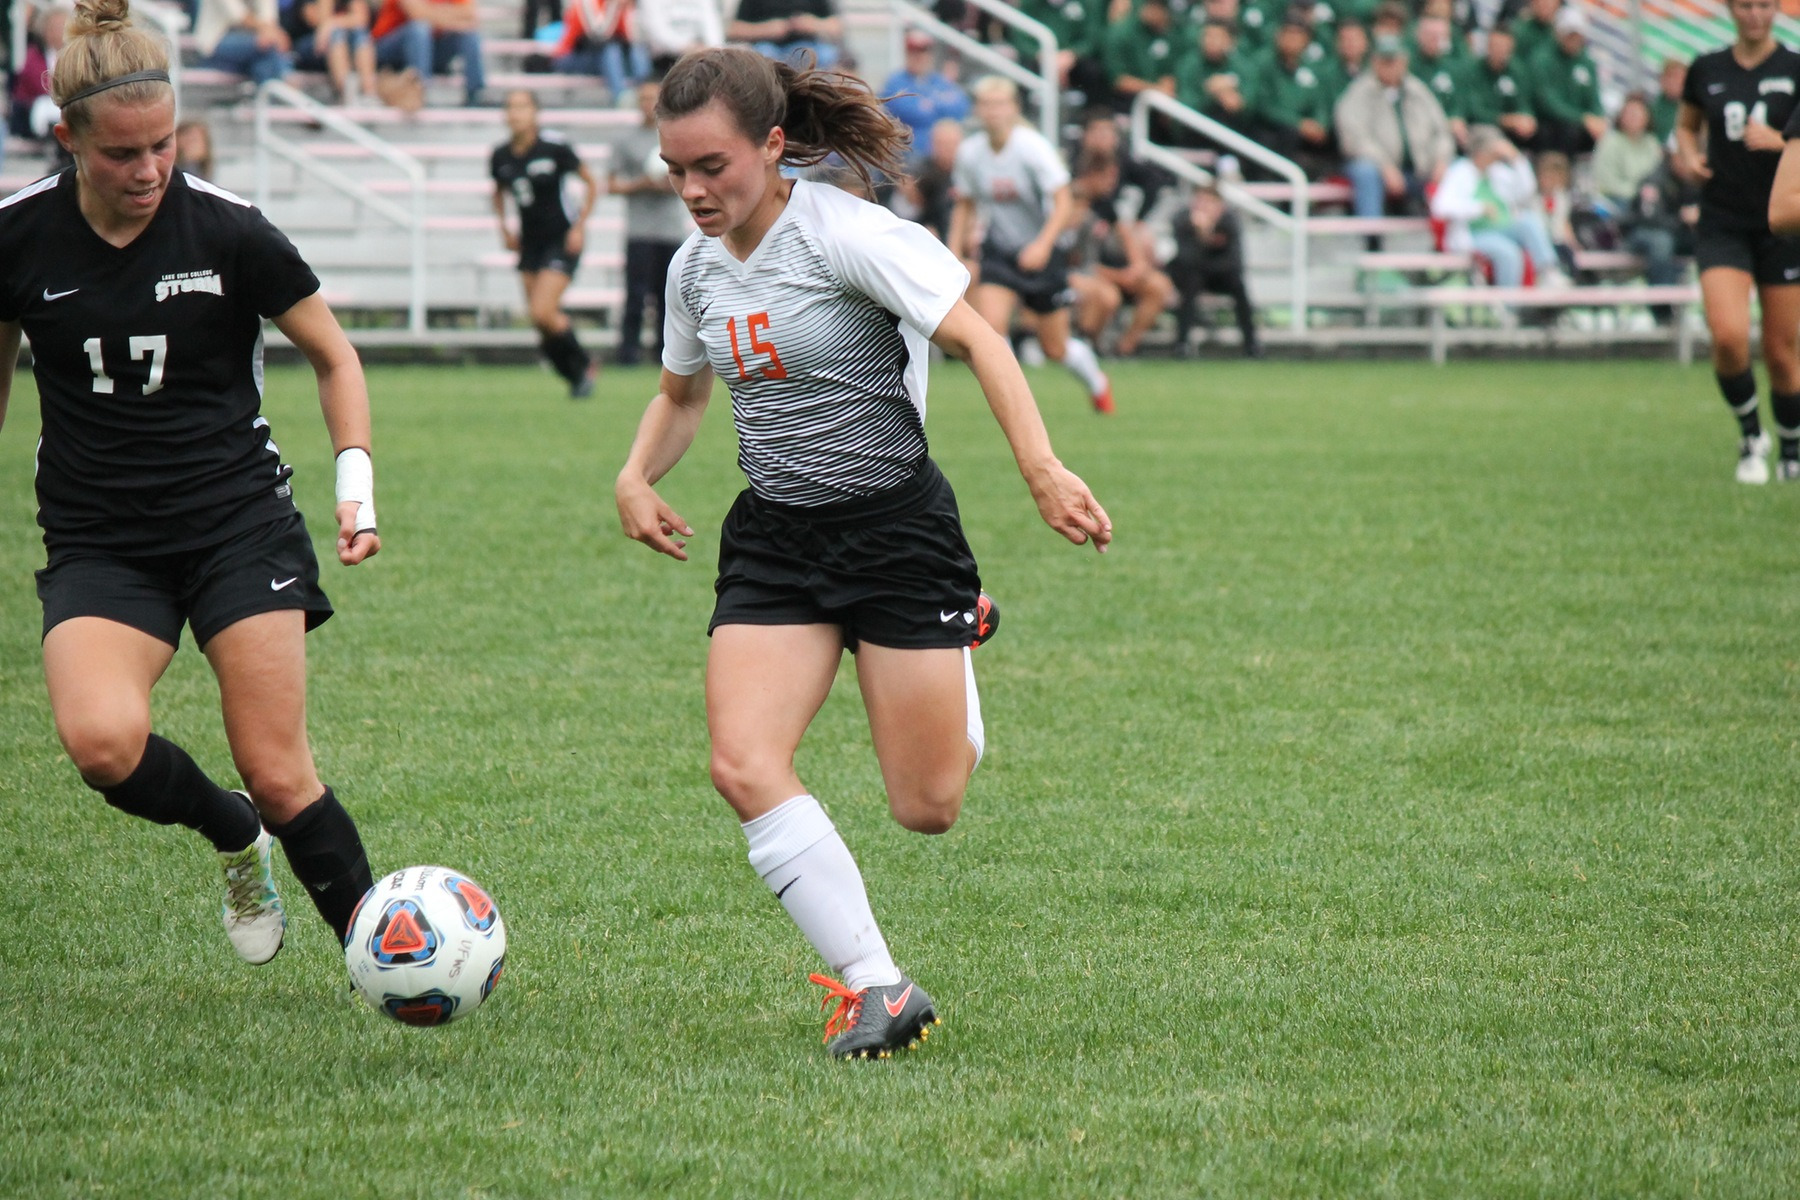 Findlay Drops Conference Match to Lake Erie